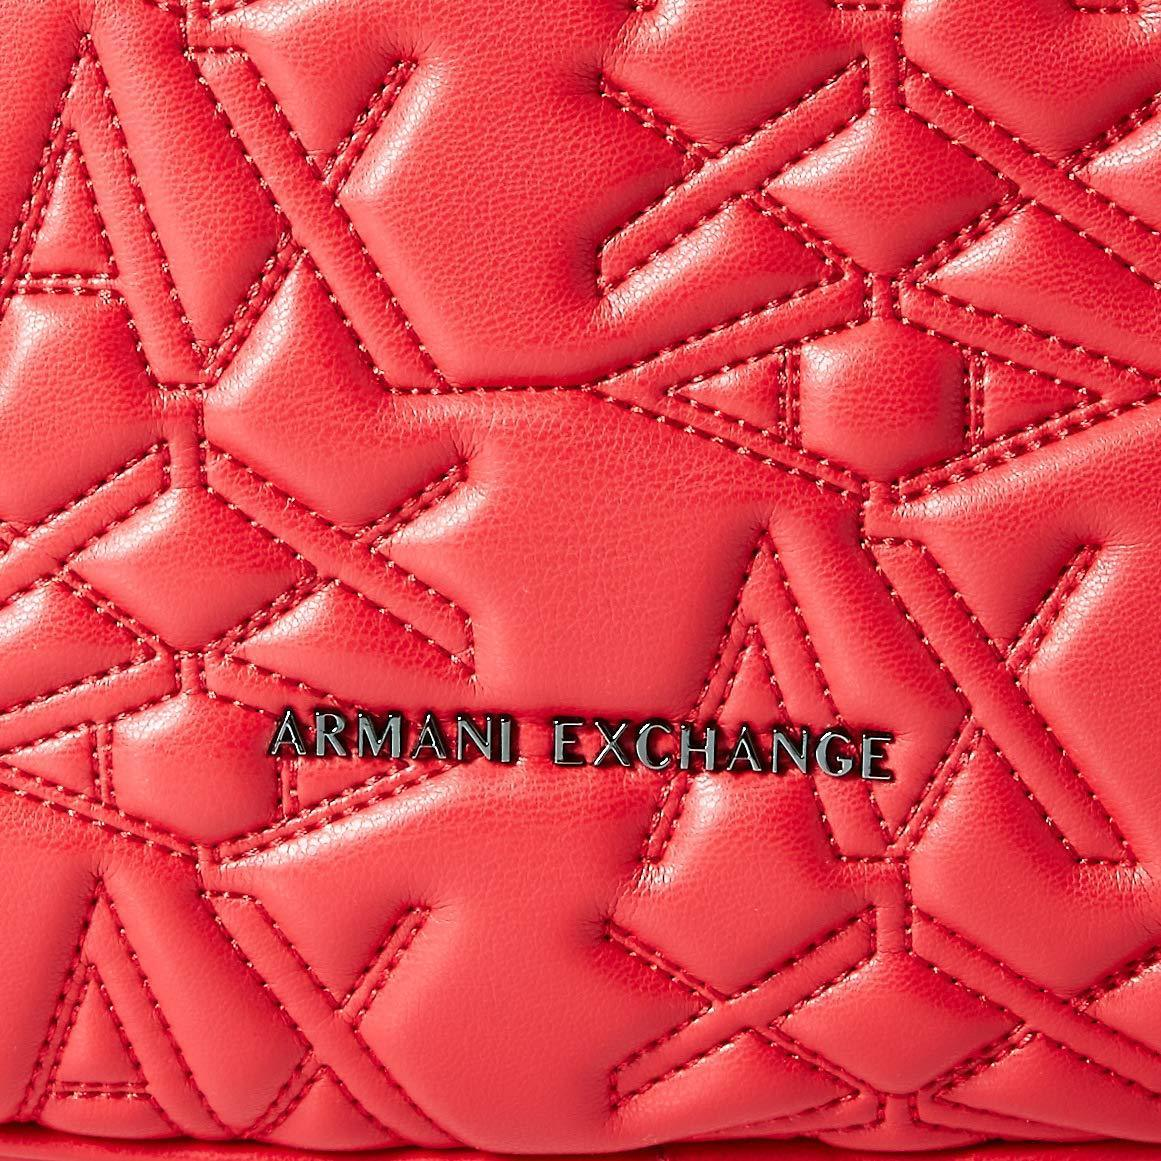 A|X ARMANI EXCHANGE(A|Xアルマーニ エクスチェンジ) [A | Xアルマーニエクスチェンジ] WOMAN'S BACKPACK ROSSO無料サイズ